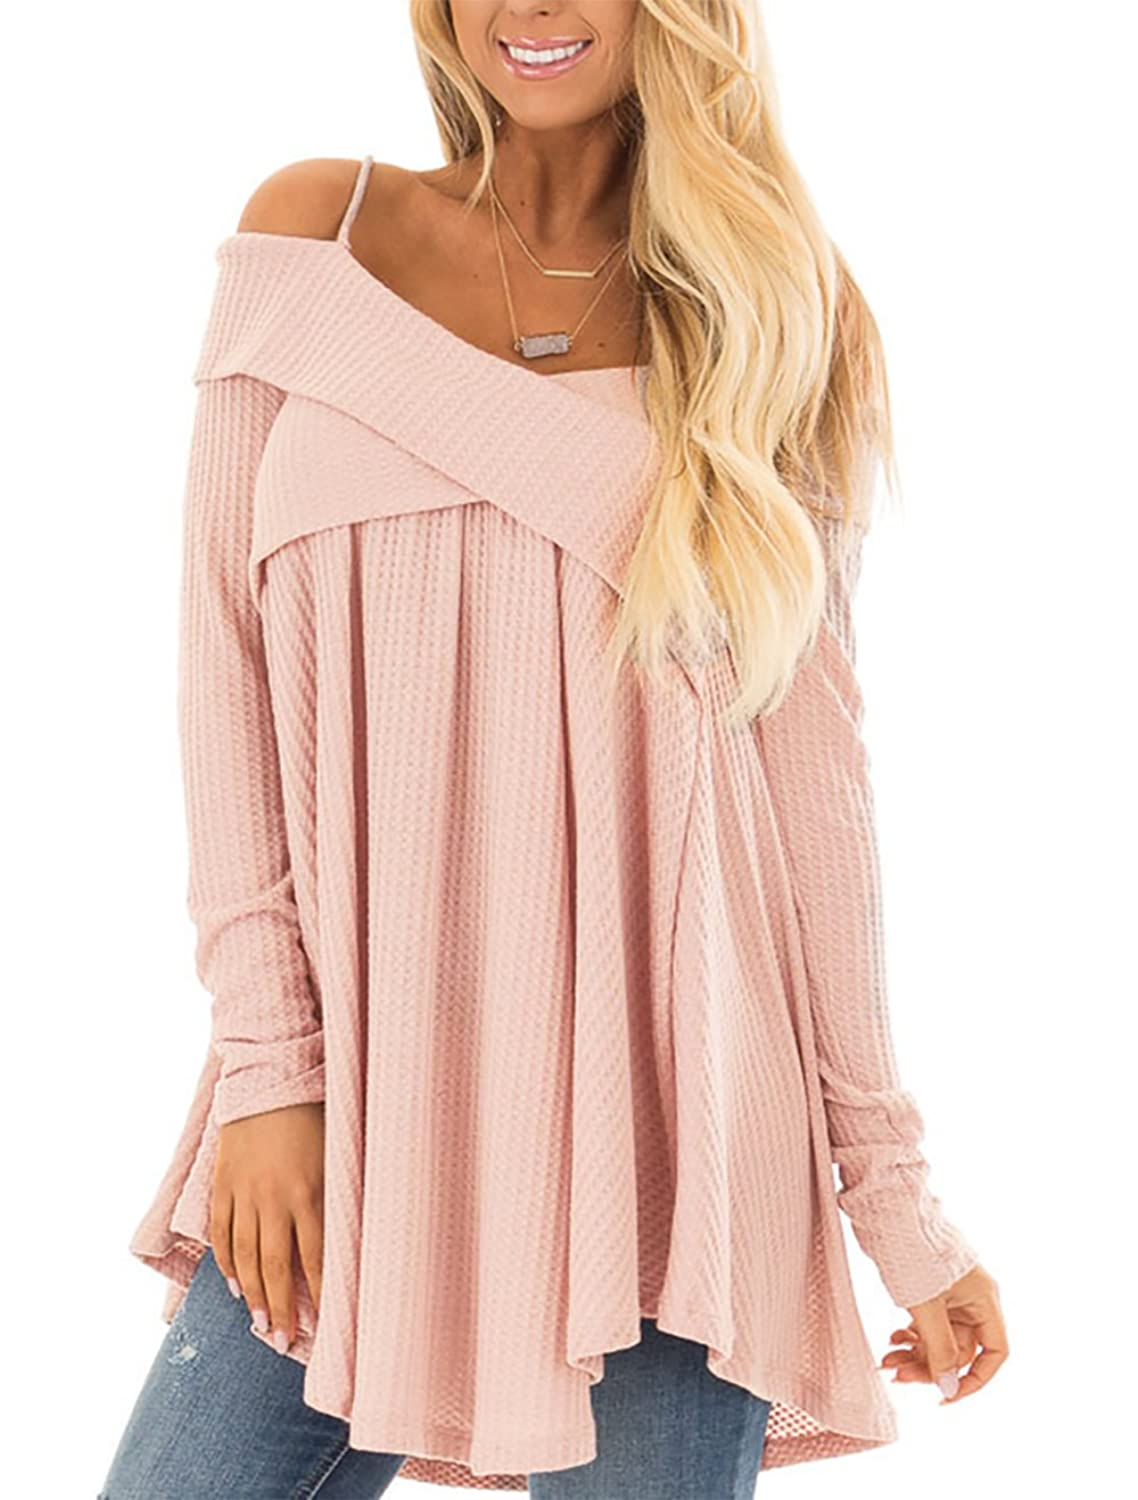 80d1070550864a Soft and breathable fabric.Classy high quality fabric,very soft to touch  and wear. Fashionable Strap Cold Shoulder Blouse Tops,It also has ...